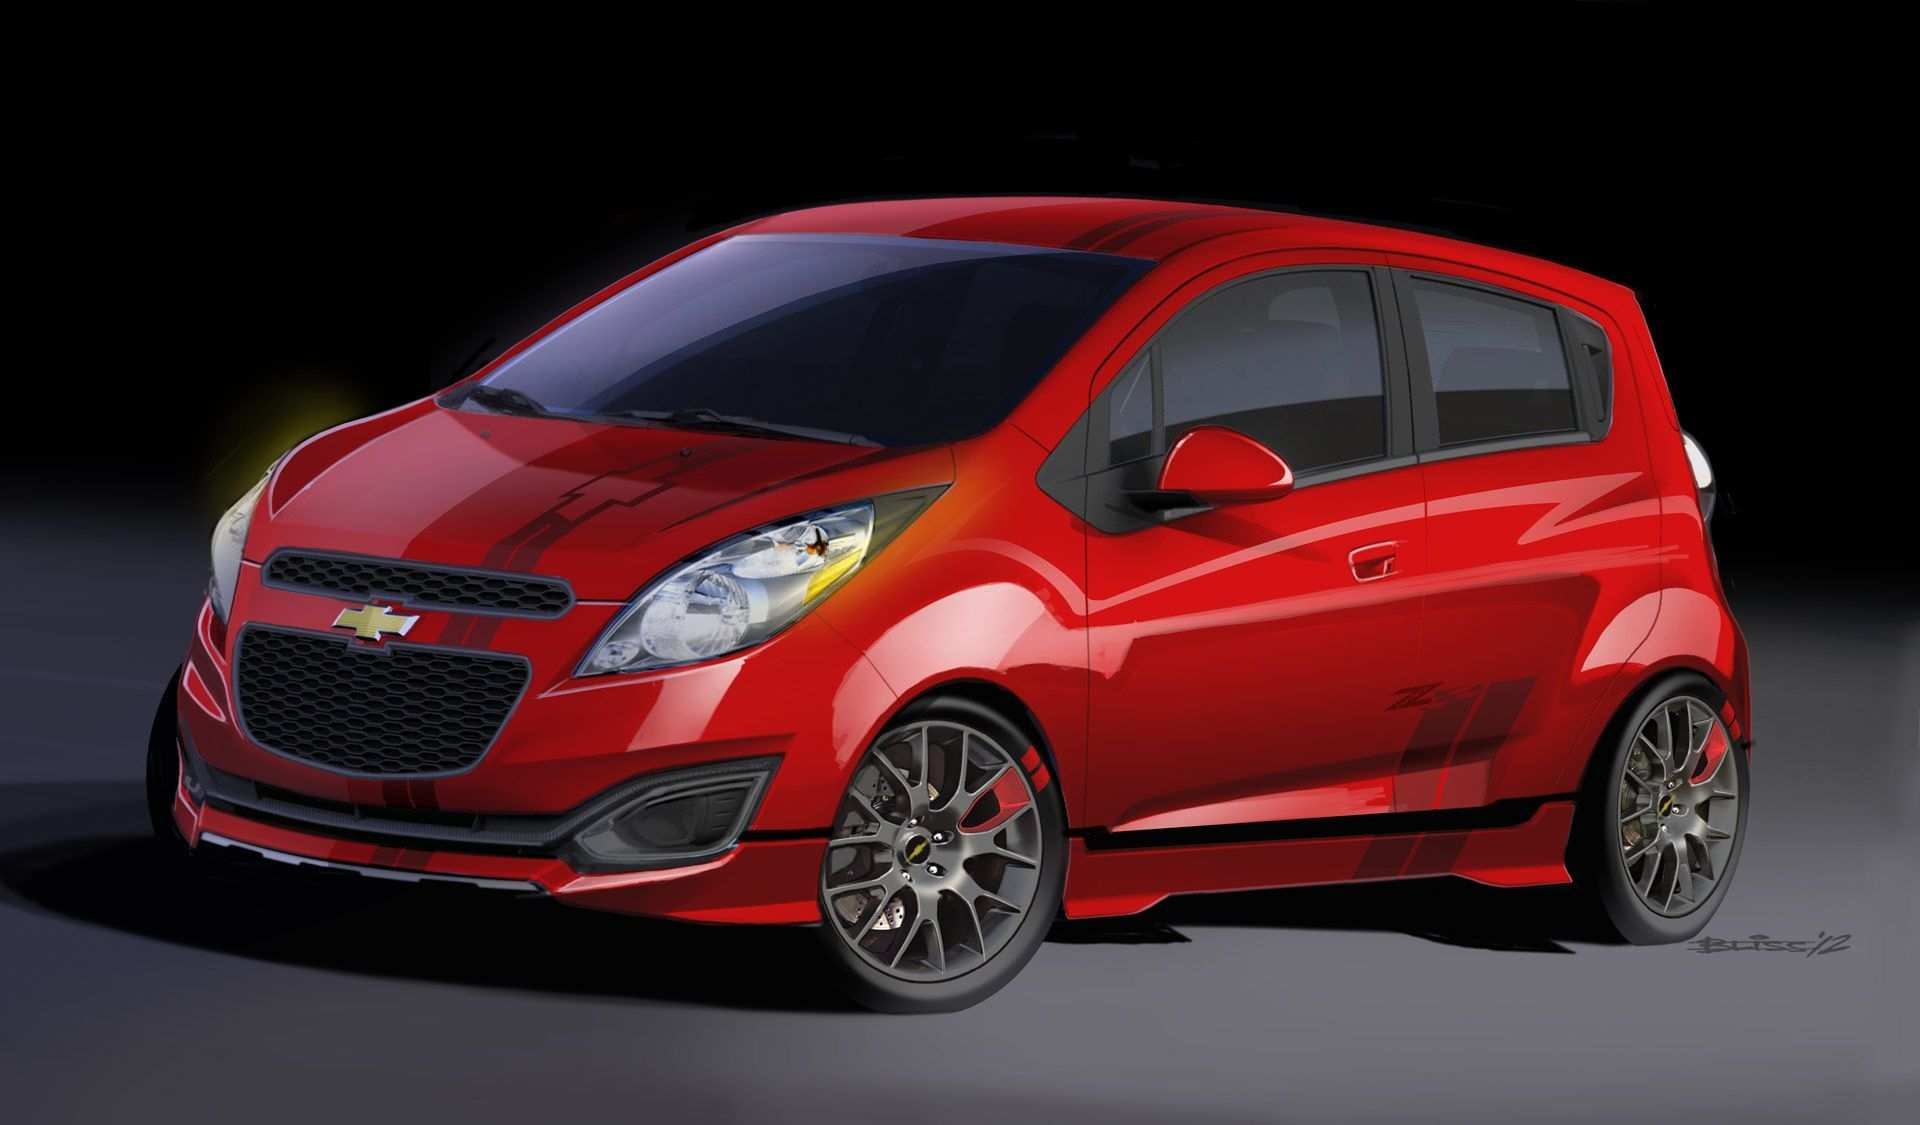 38 Gallery of 2020 Chevrolet Spark Rumors for 2020 Chevrolet Spark